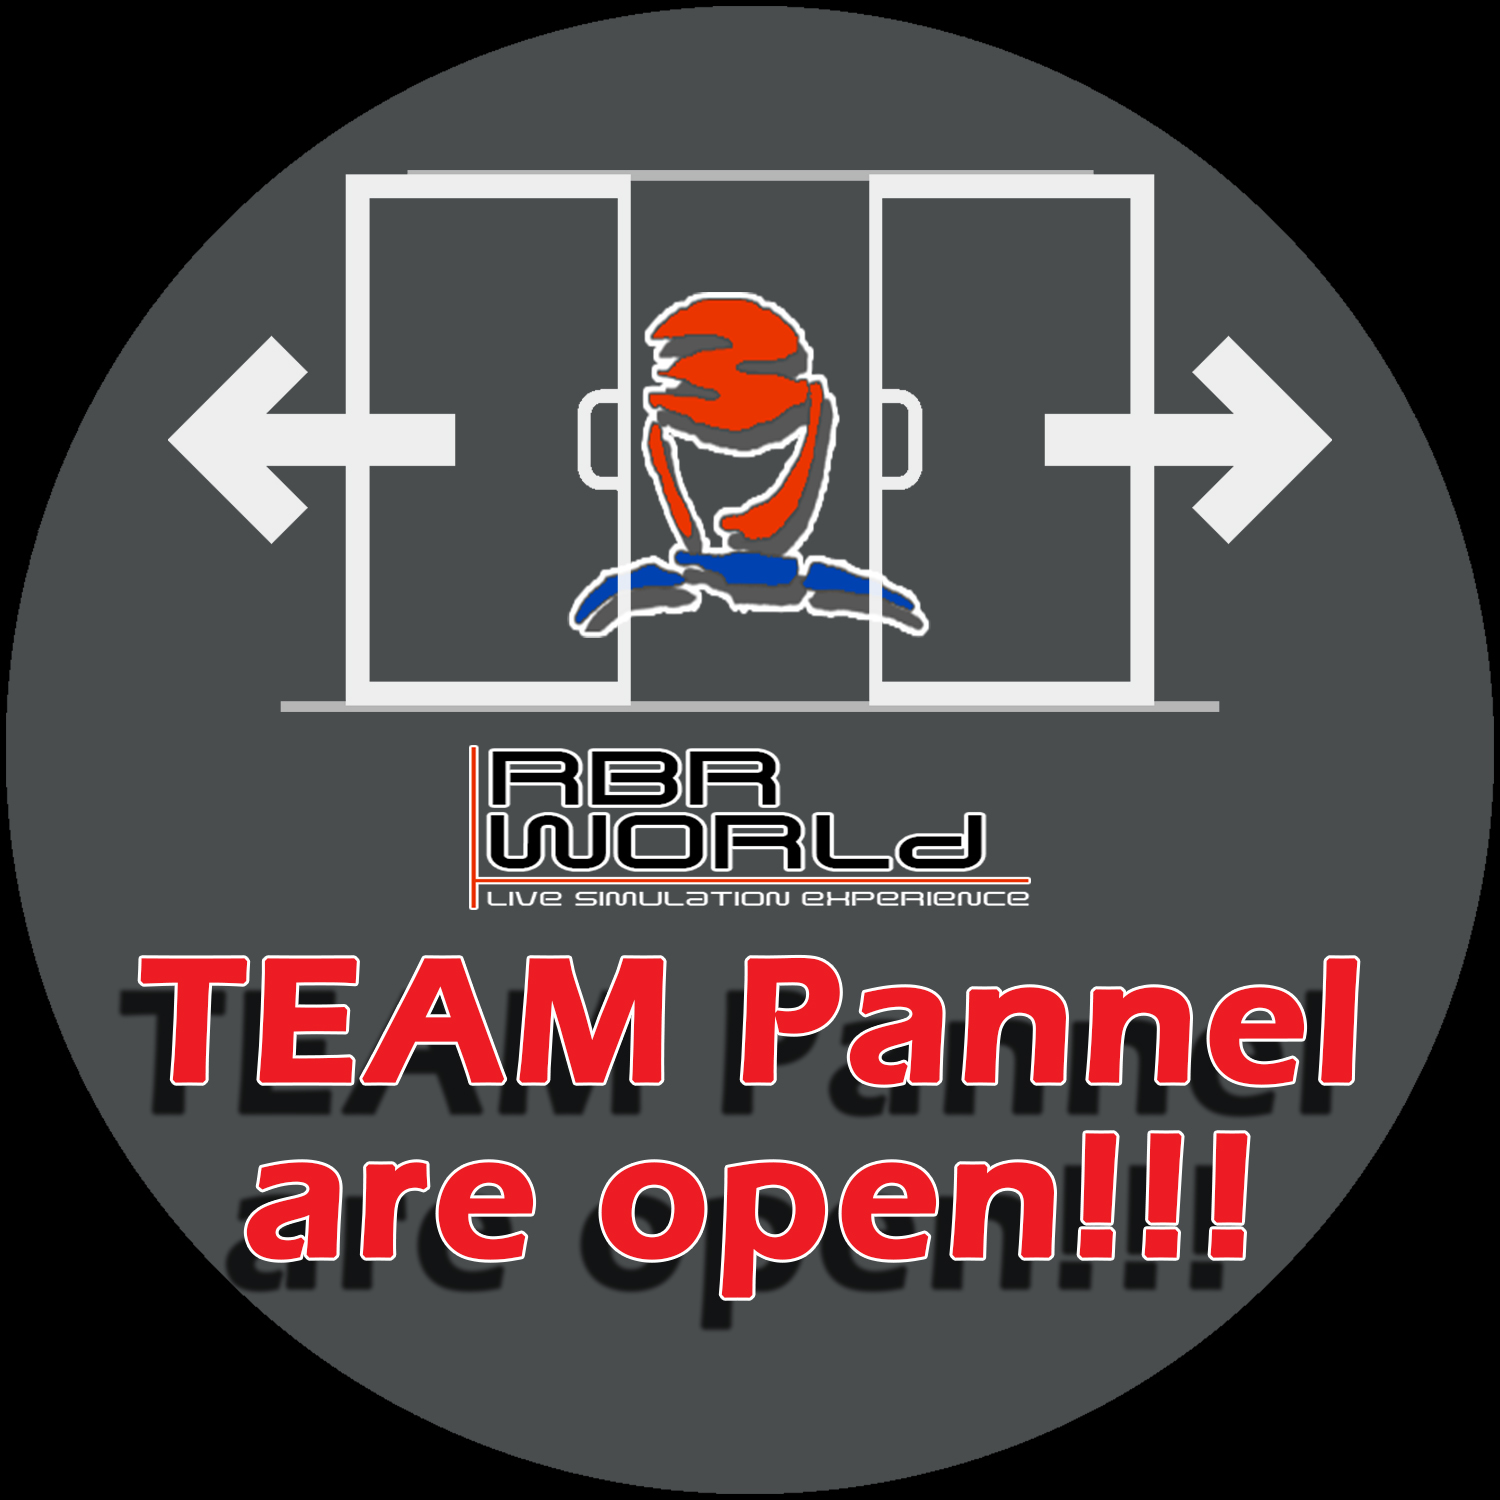 TEAM PANELS ARE OPENING!!